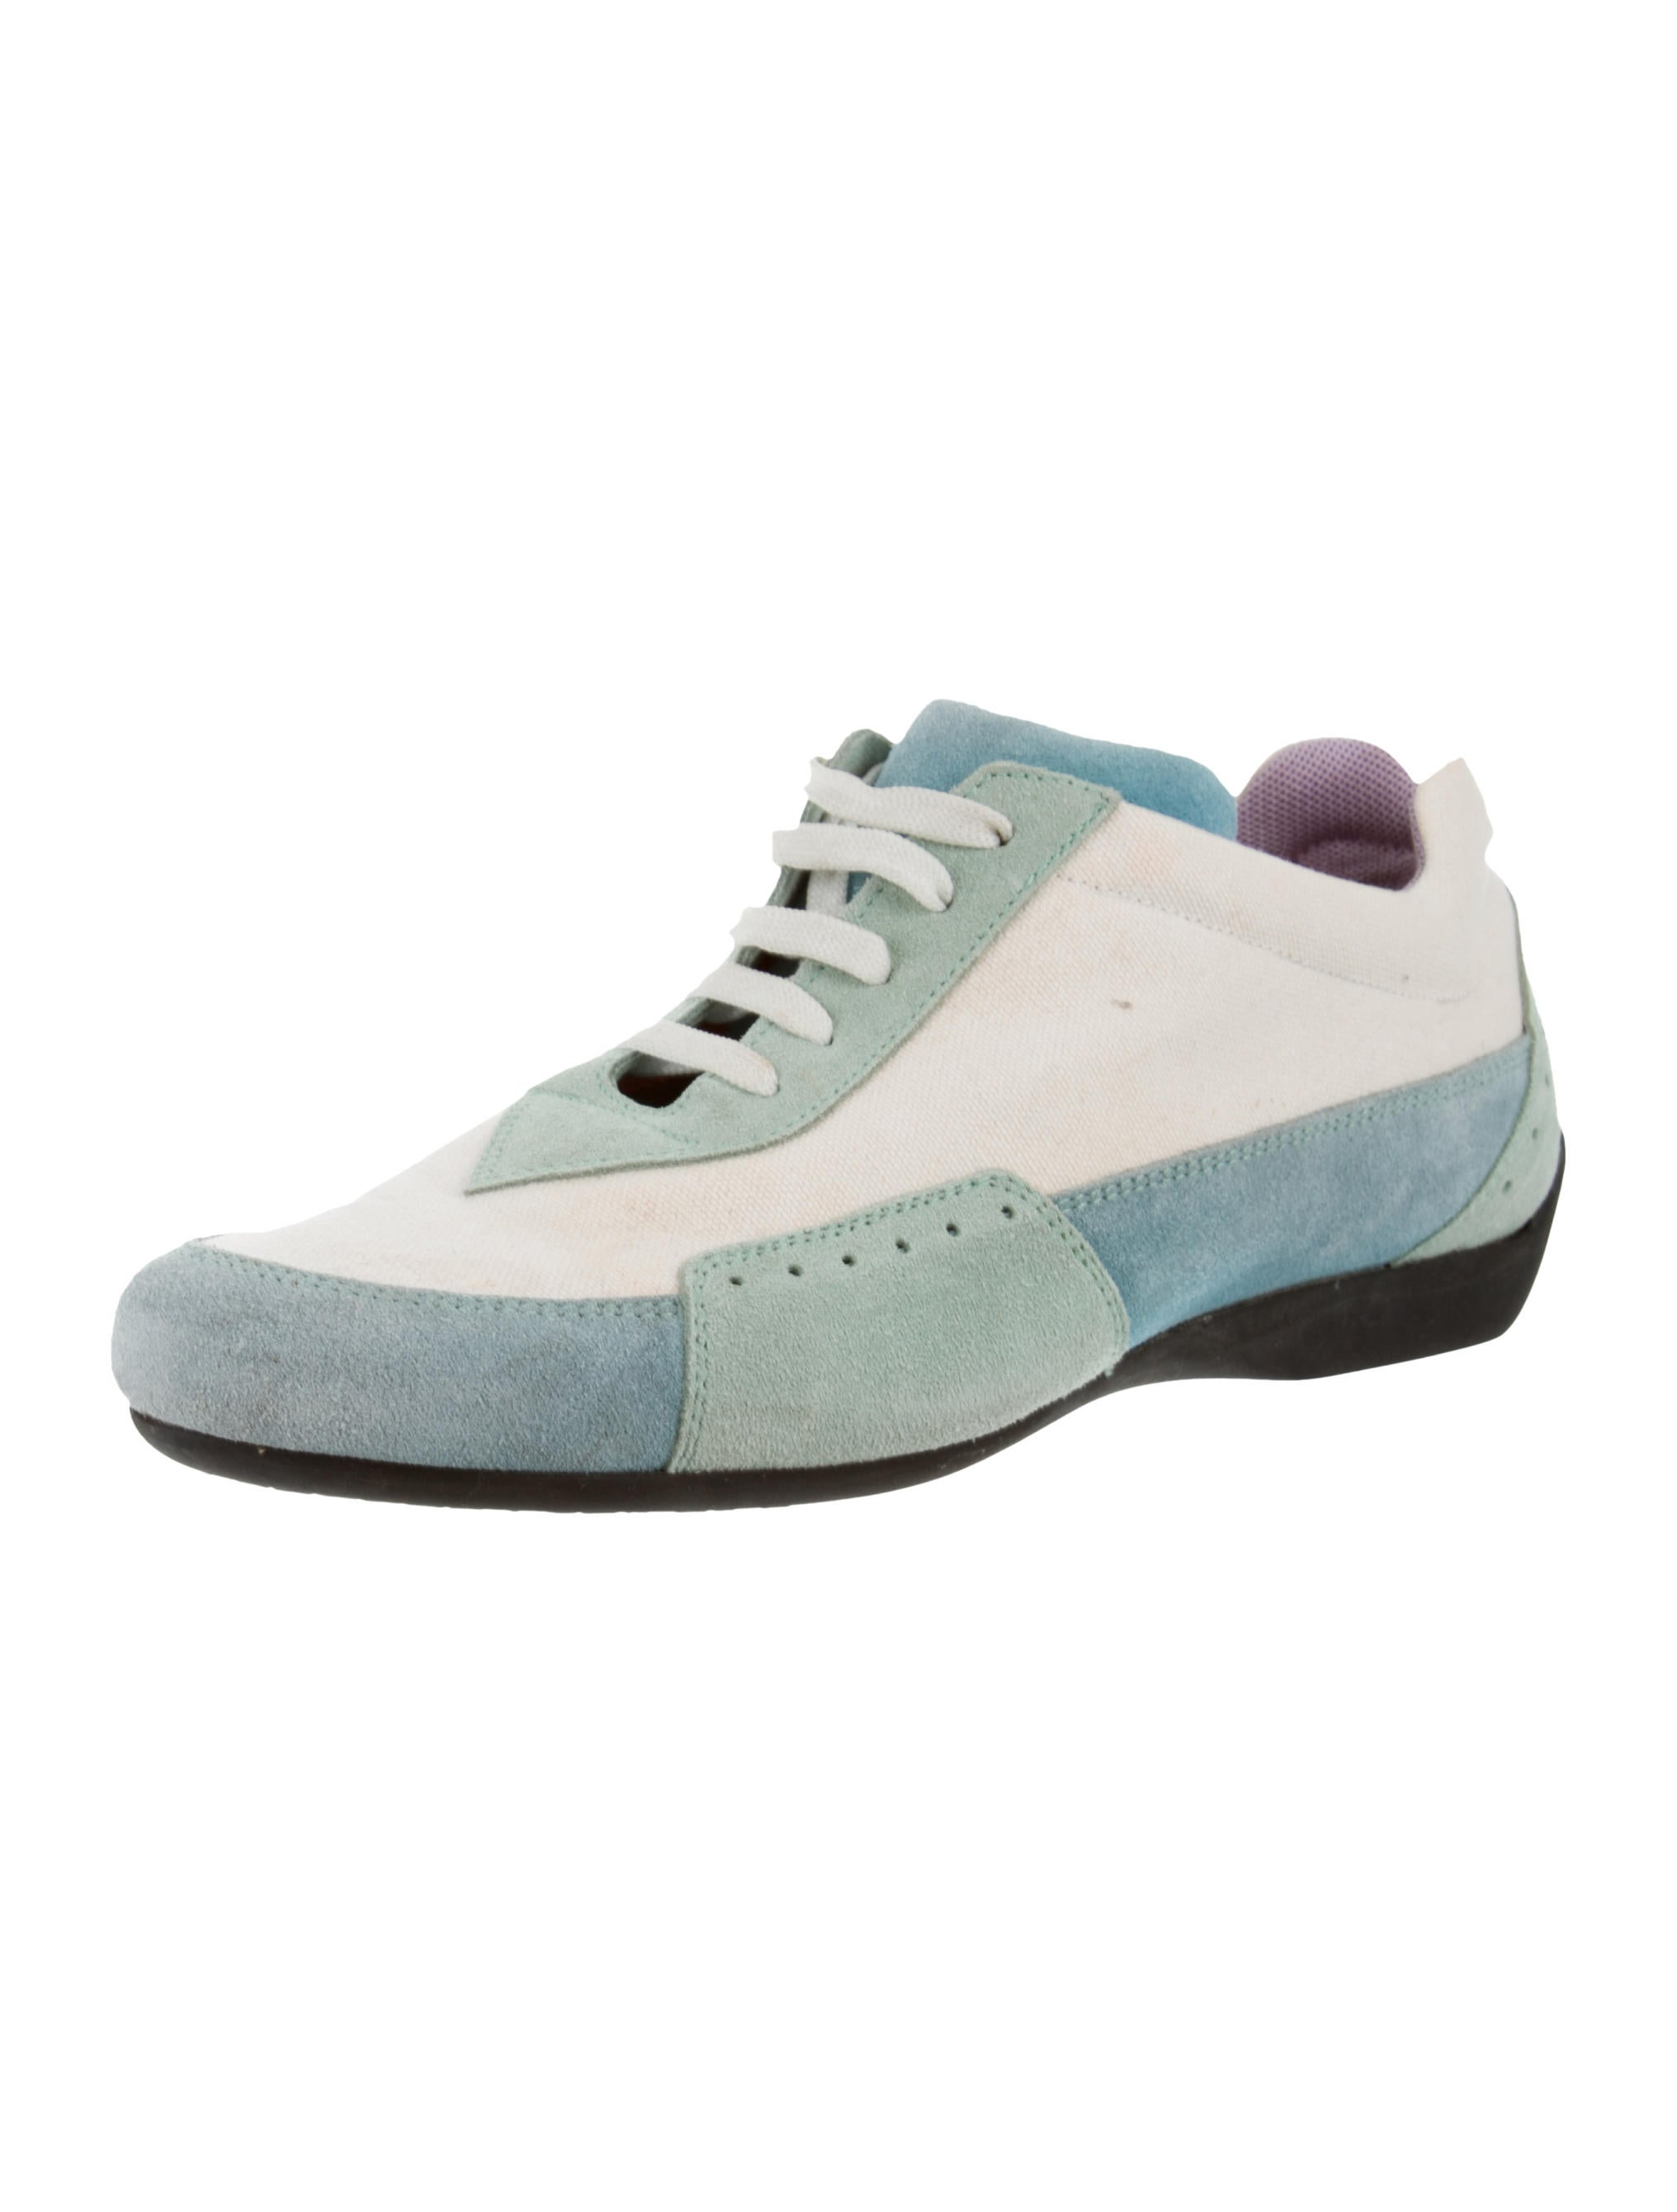 clearance for sale Emilio Pucci Canvas Low Top Sneakers sale wide range of cheap professional st9RmFFATy